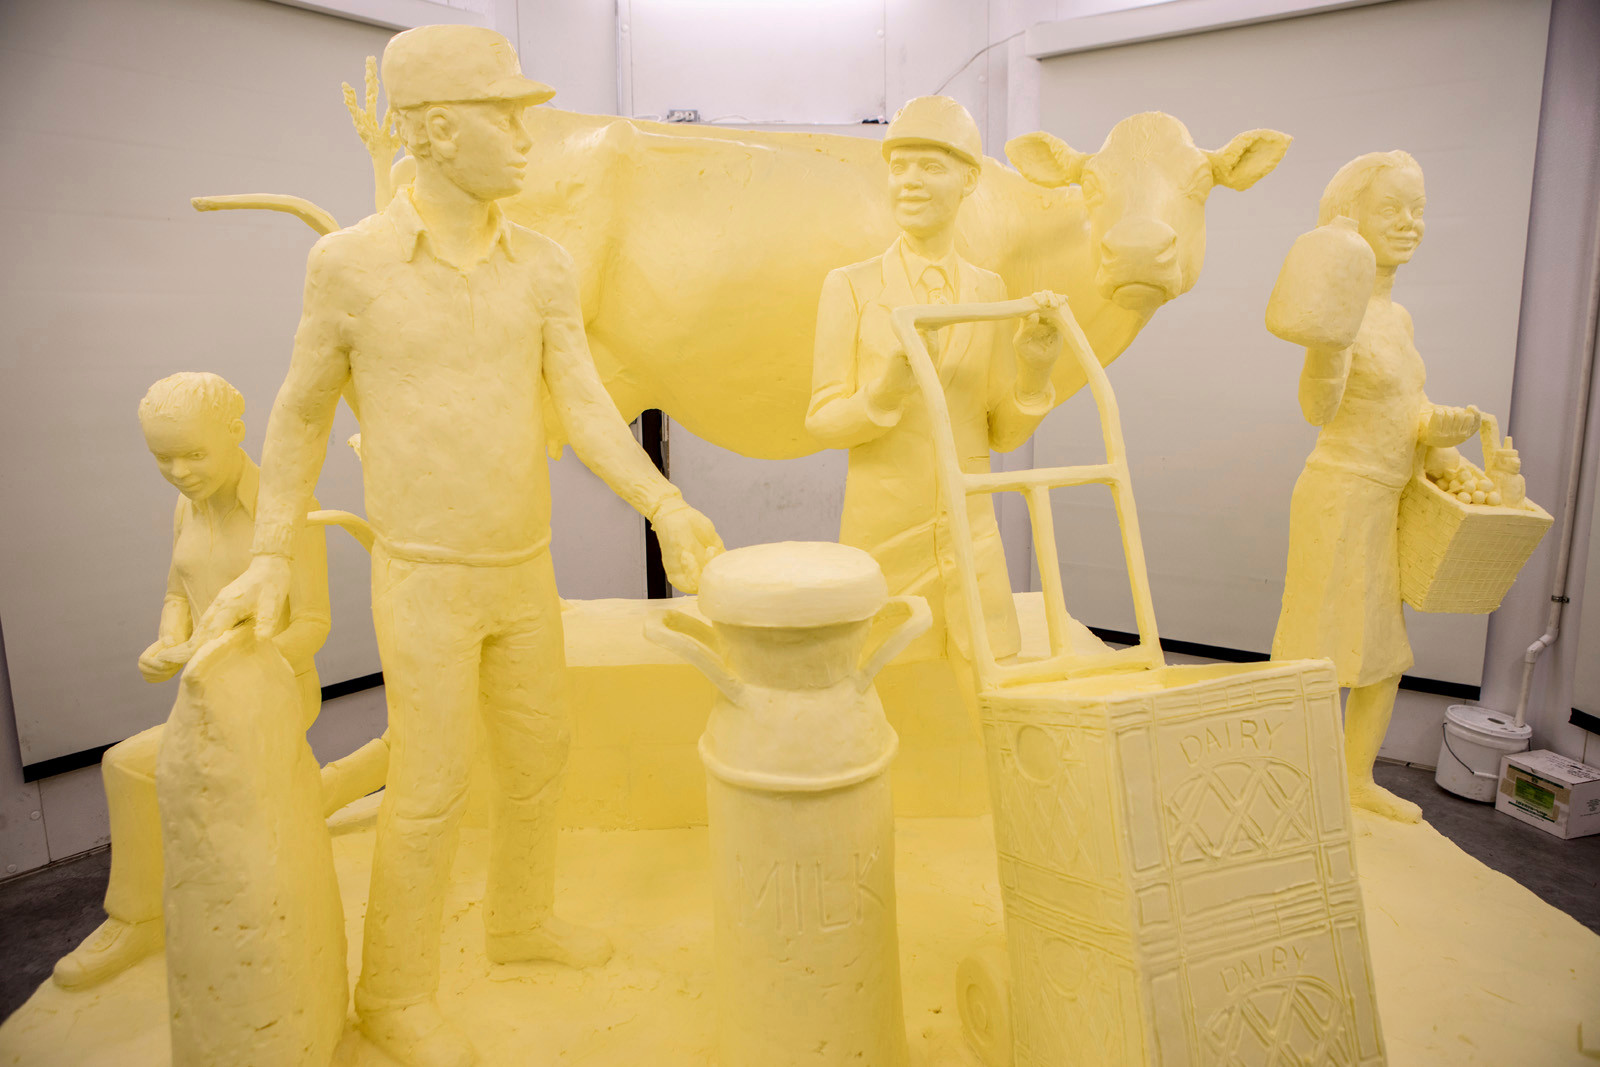 Pennsylvania unveils half-ton butter sculpture ahead of Farm Show